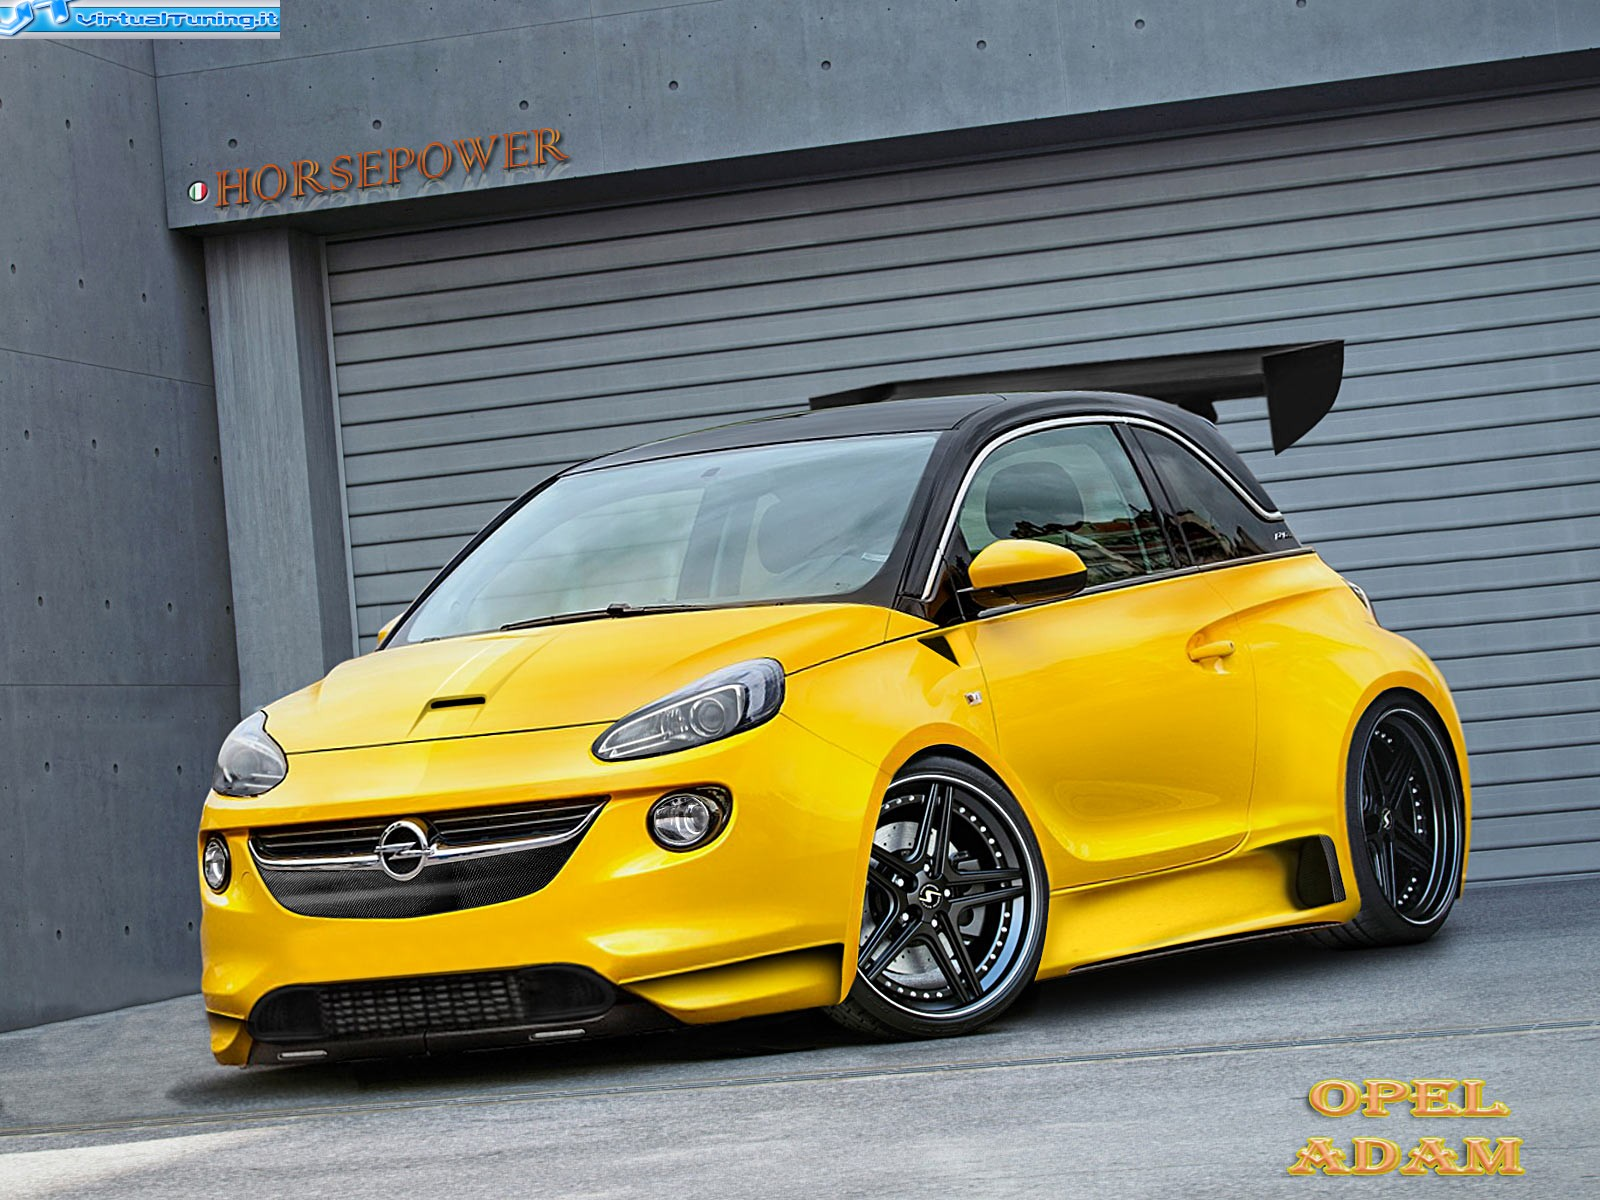 opel s stylish adam minicar could become a buick. Black Bedroom Furniture Sets. Home Design Ideas